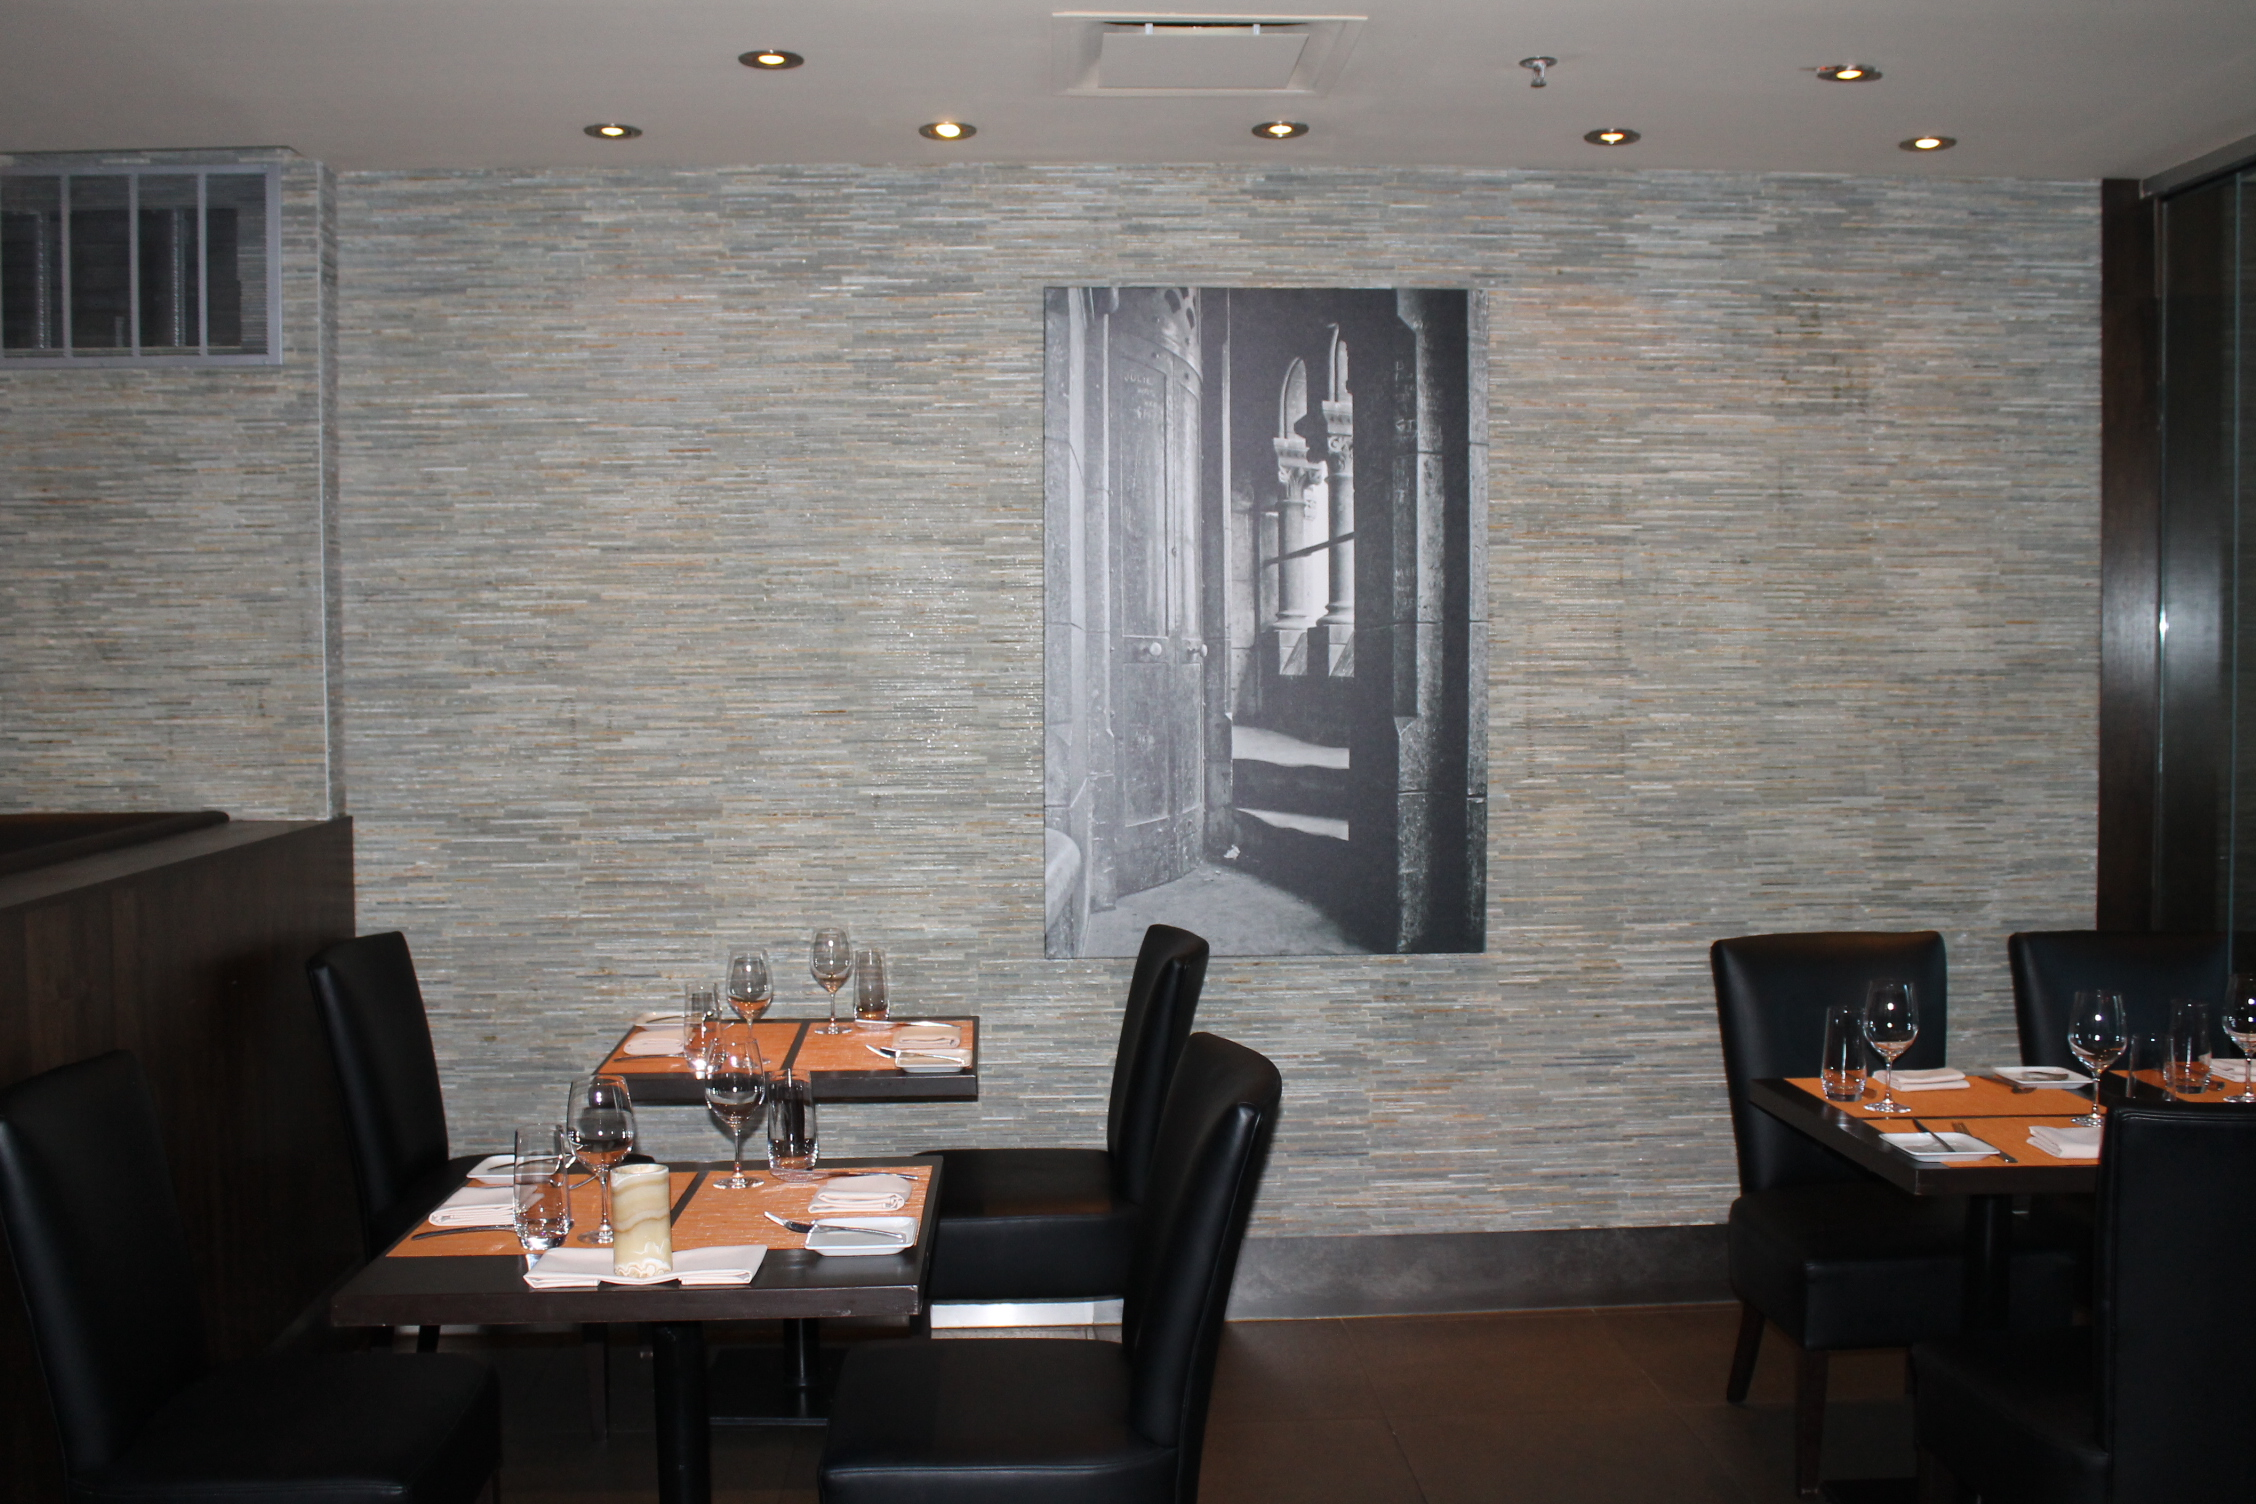 Picture of standard height tables within restaurant.